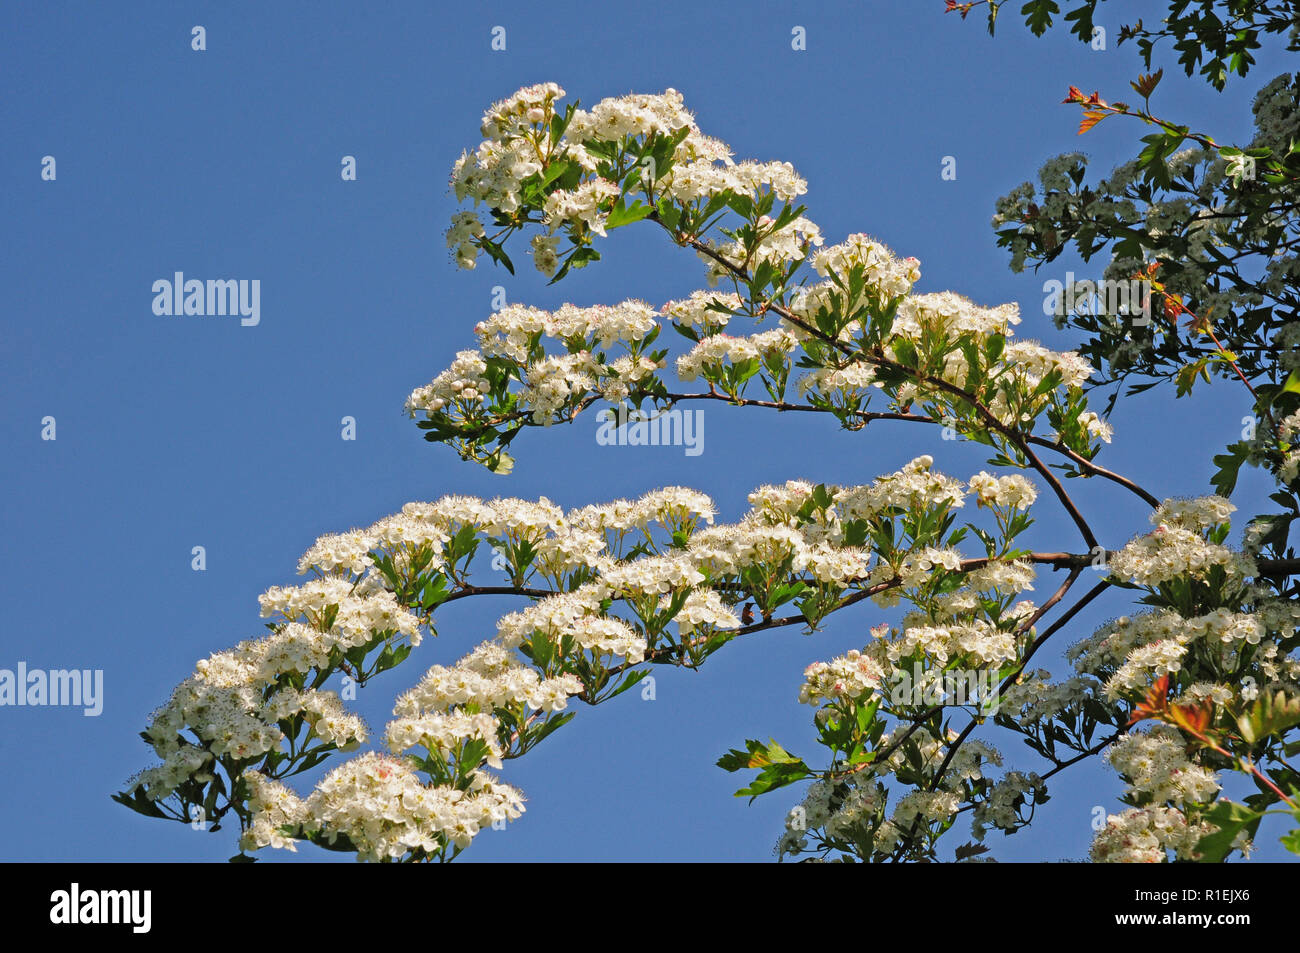 Hawthorn tree, (Crataegus monogyna) in bloom. - Stock Image